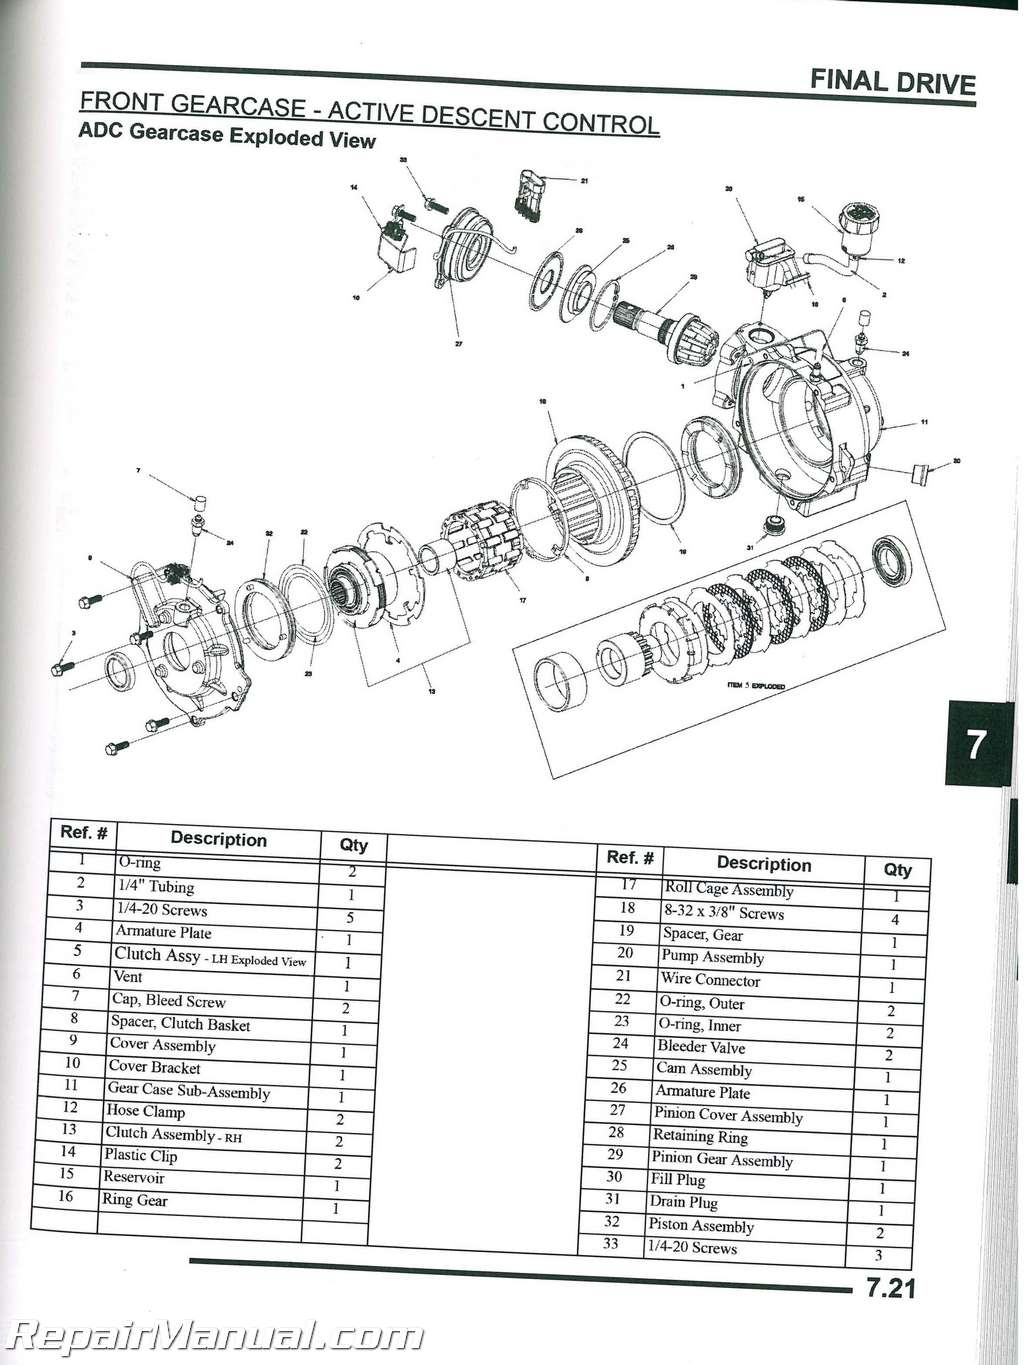 2008 Sportsman 500 X2 Wiring Diagram Pdf 40 Images Efi Polaris Touring Ho Atv Service Manual 004